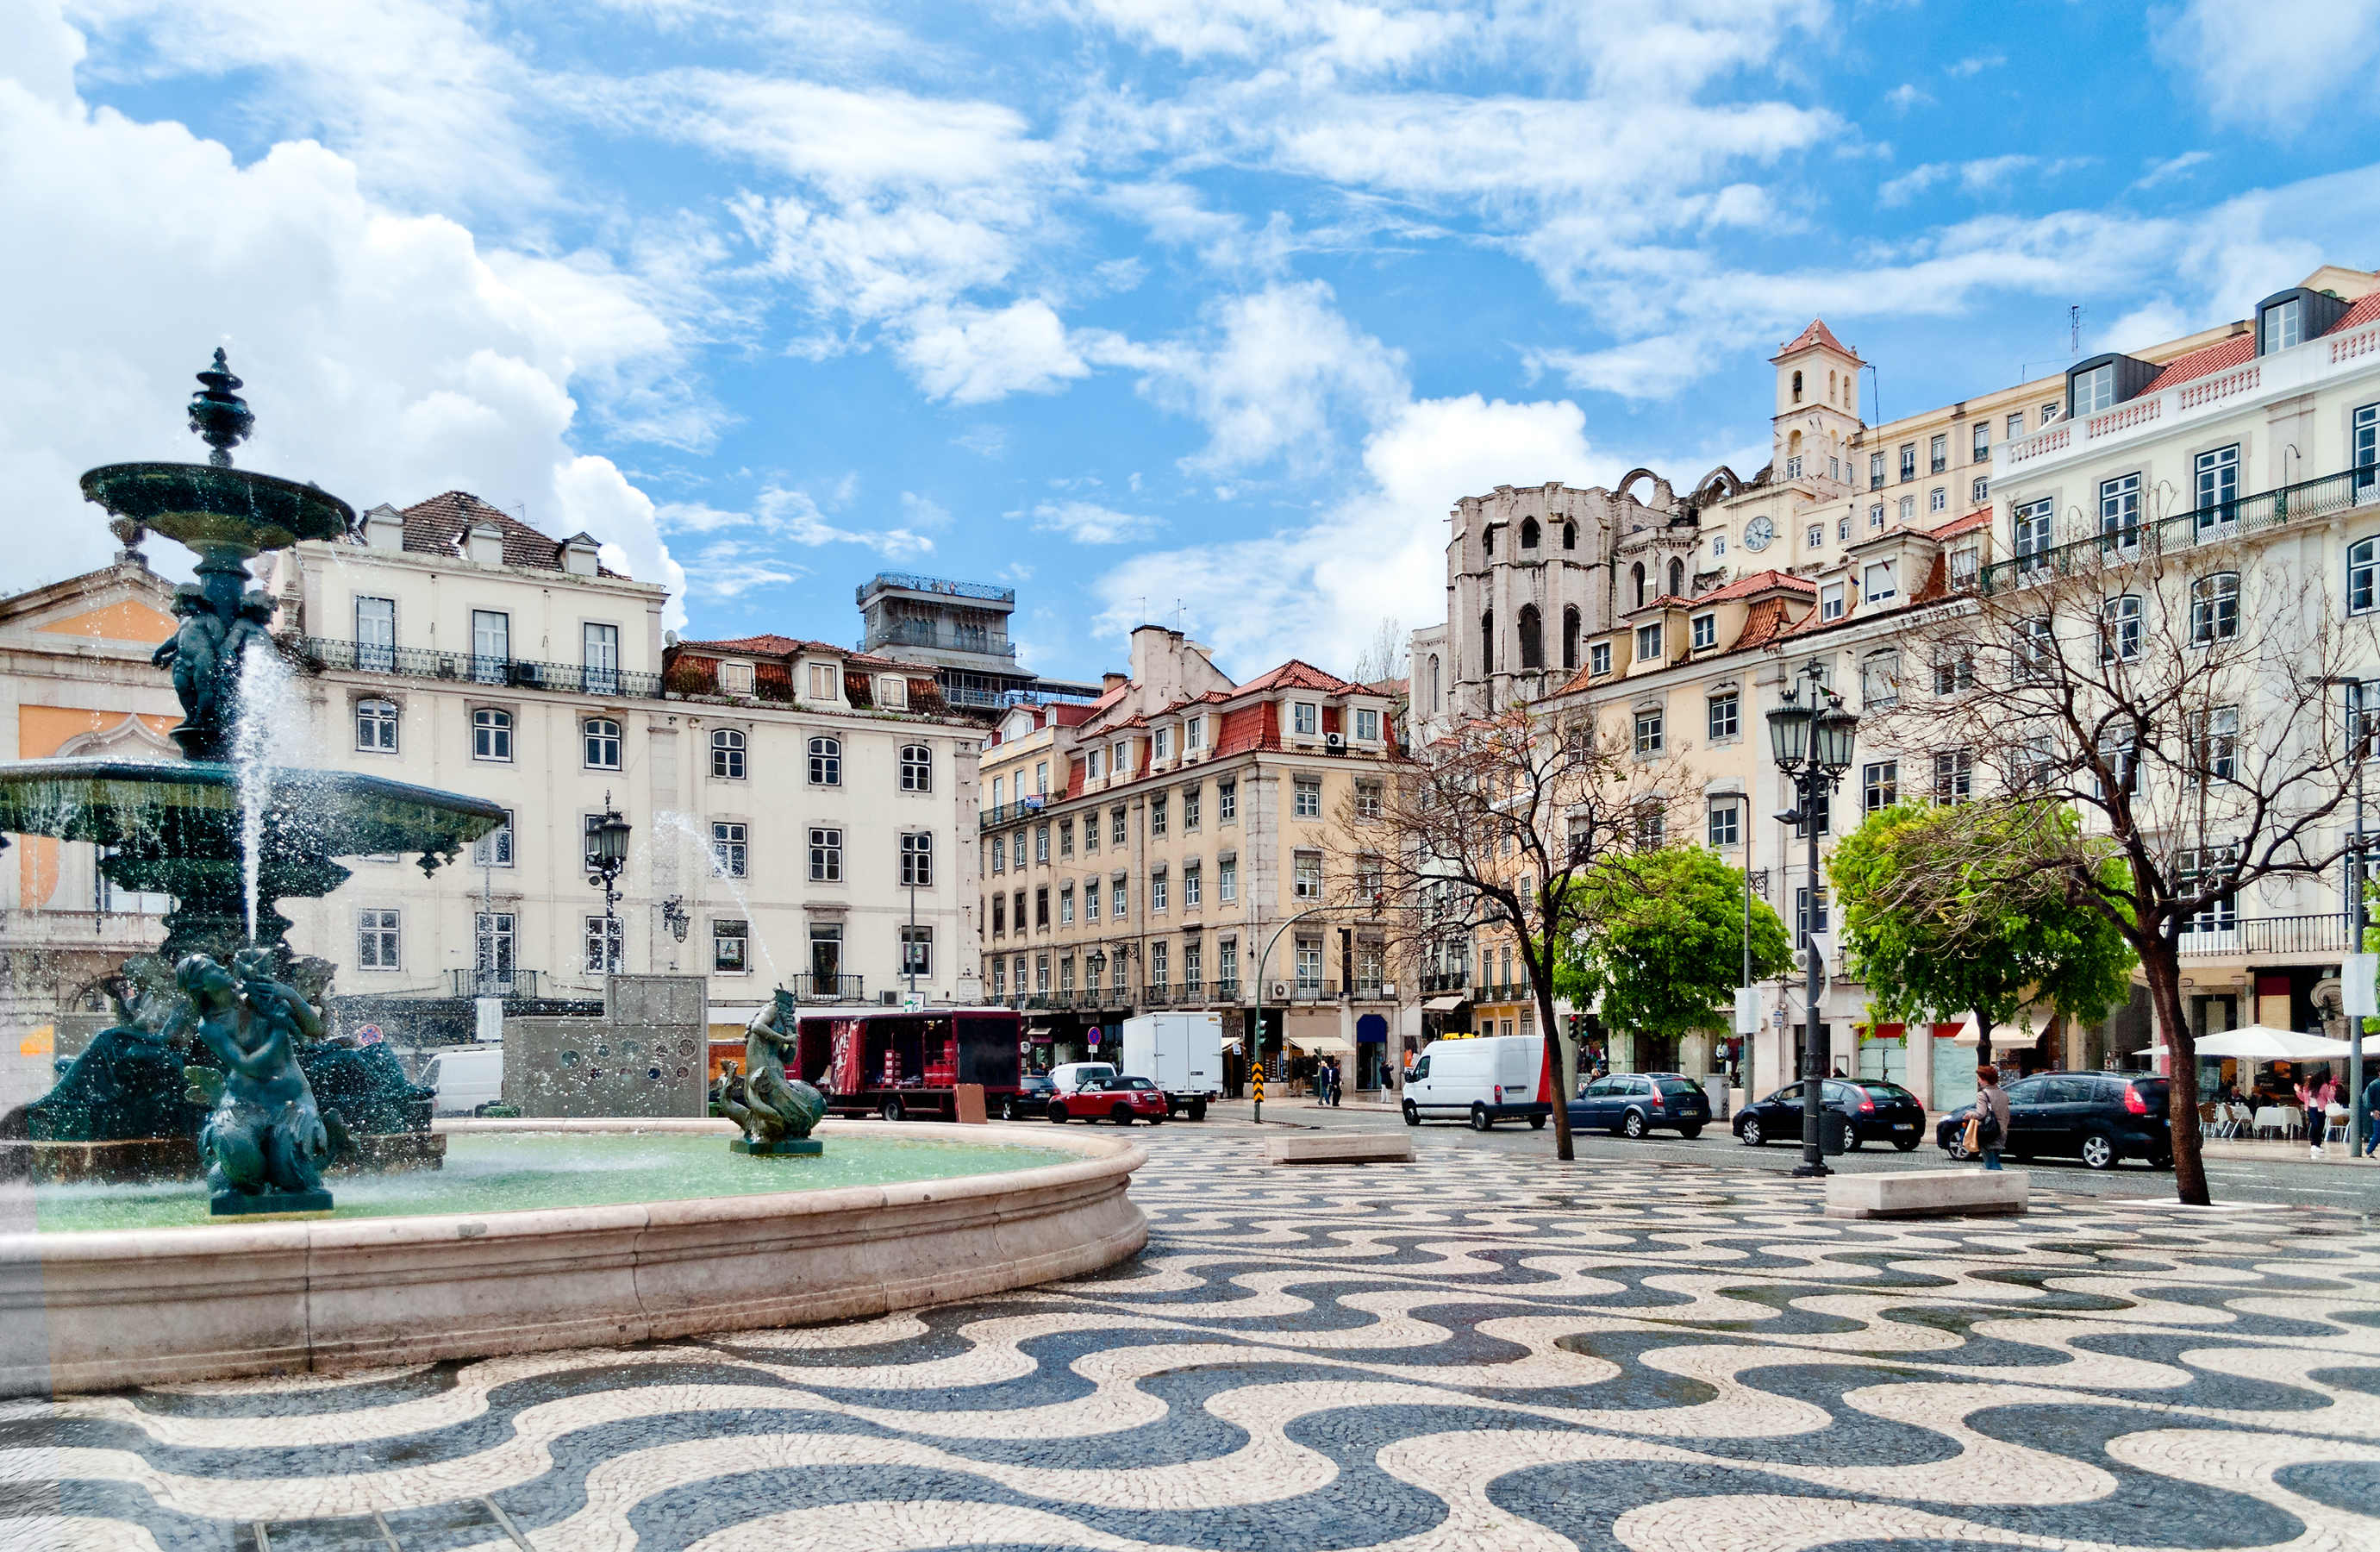 Portugal - Rossio Square